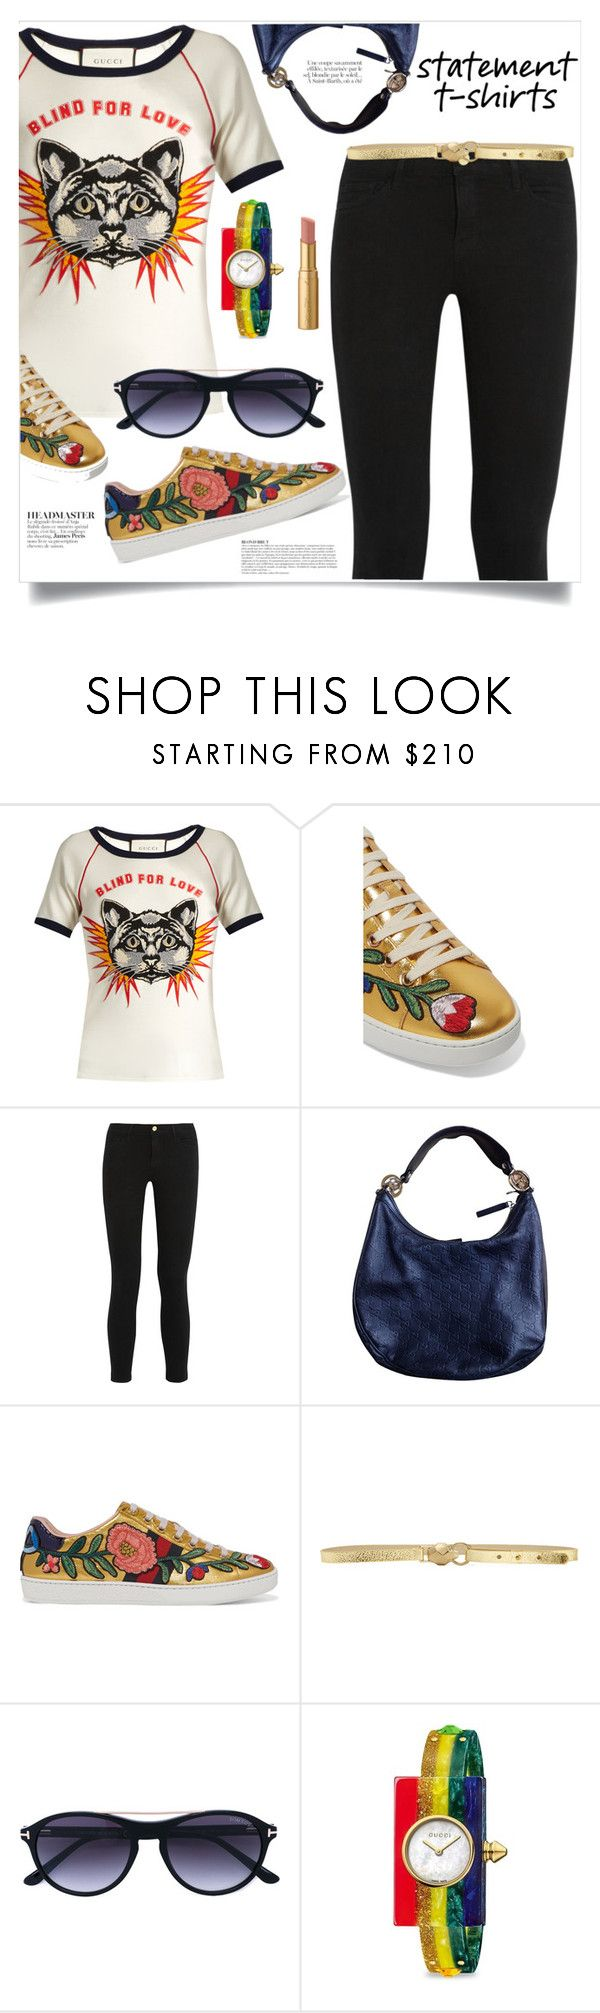 """Slogan T-Shirt"" by spica-caracterielle ❤ liked on Polyvore featuring Gucci, Frame, Anja, Just Cavalli, Tom Ford, Too Faced Cosmetics and slogantshirts"